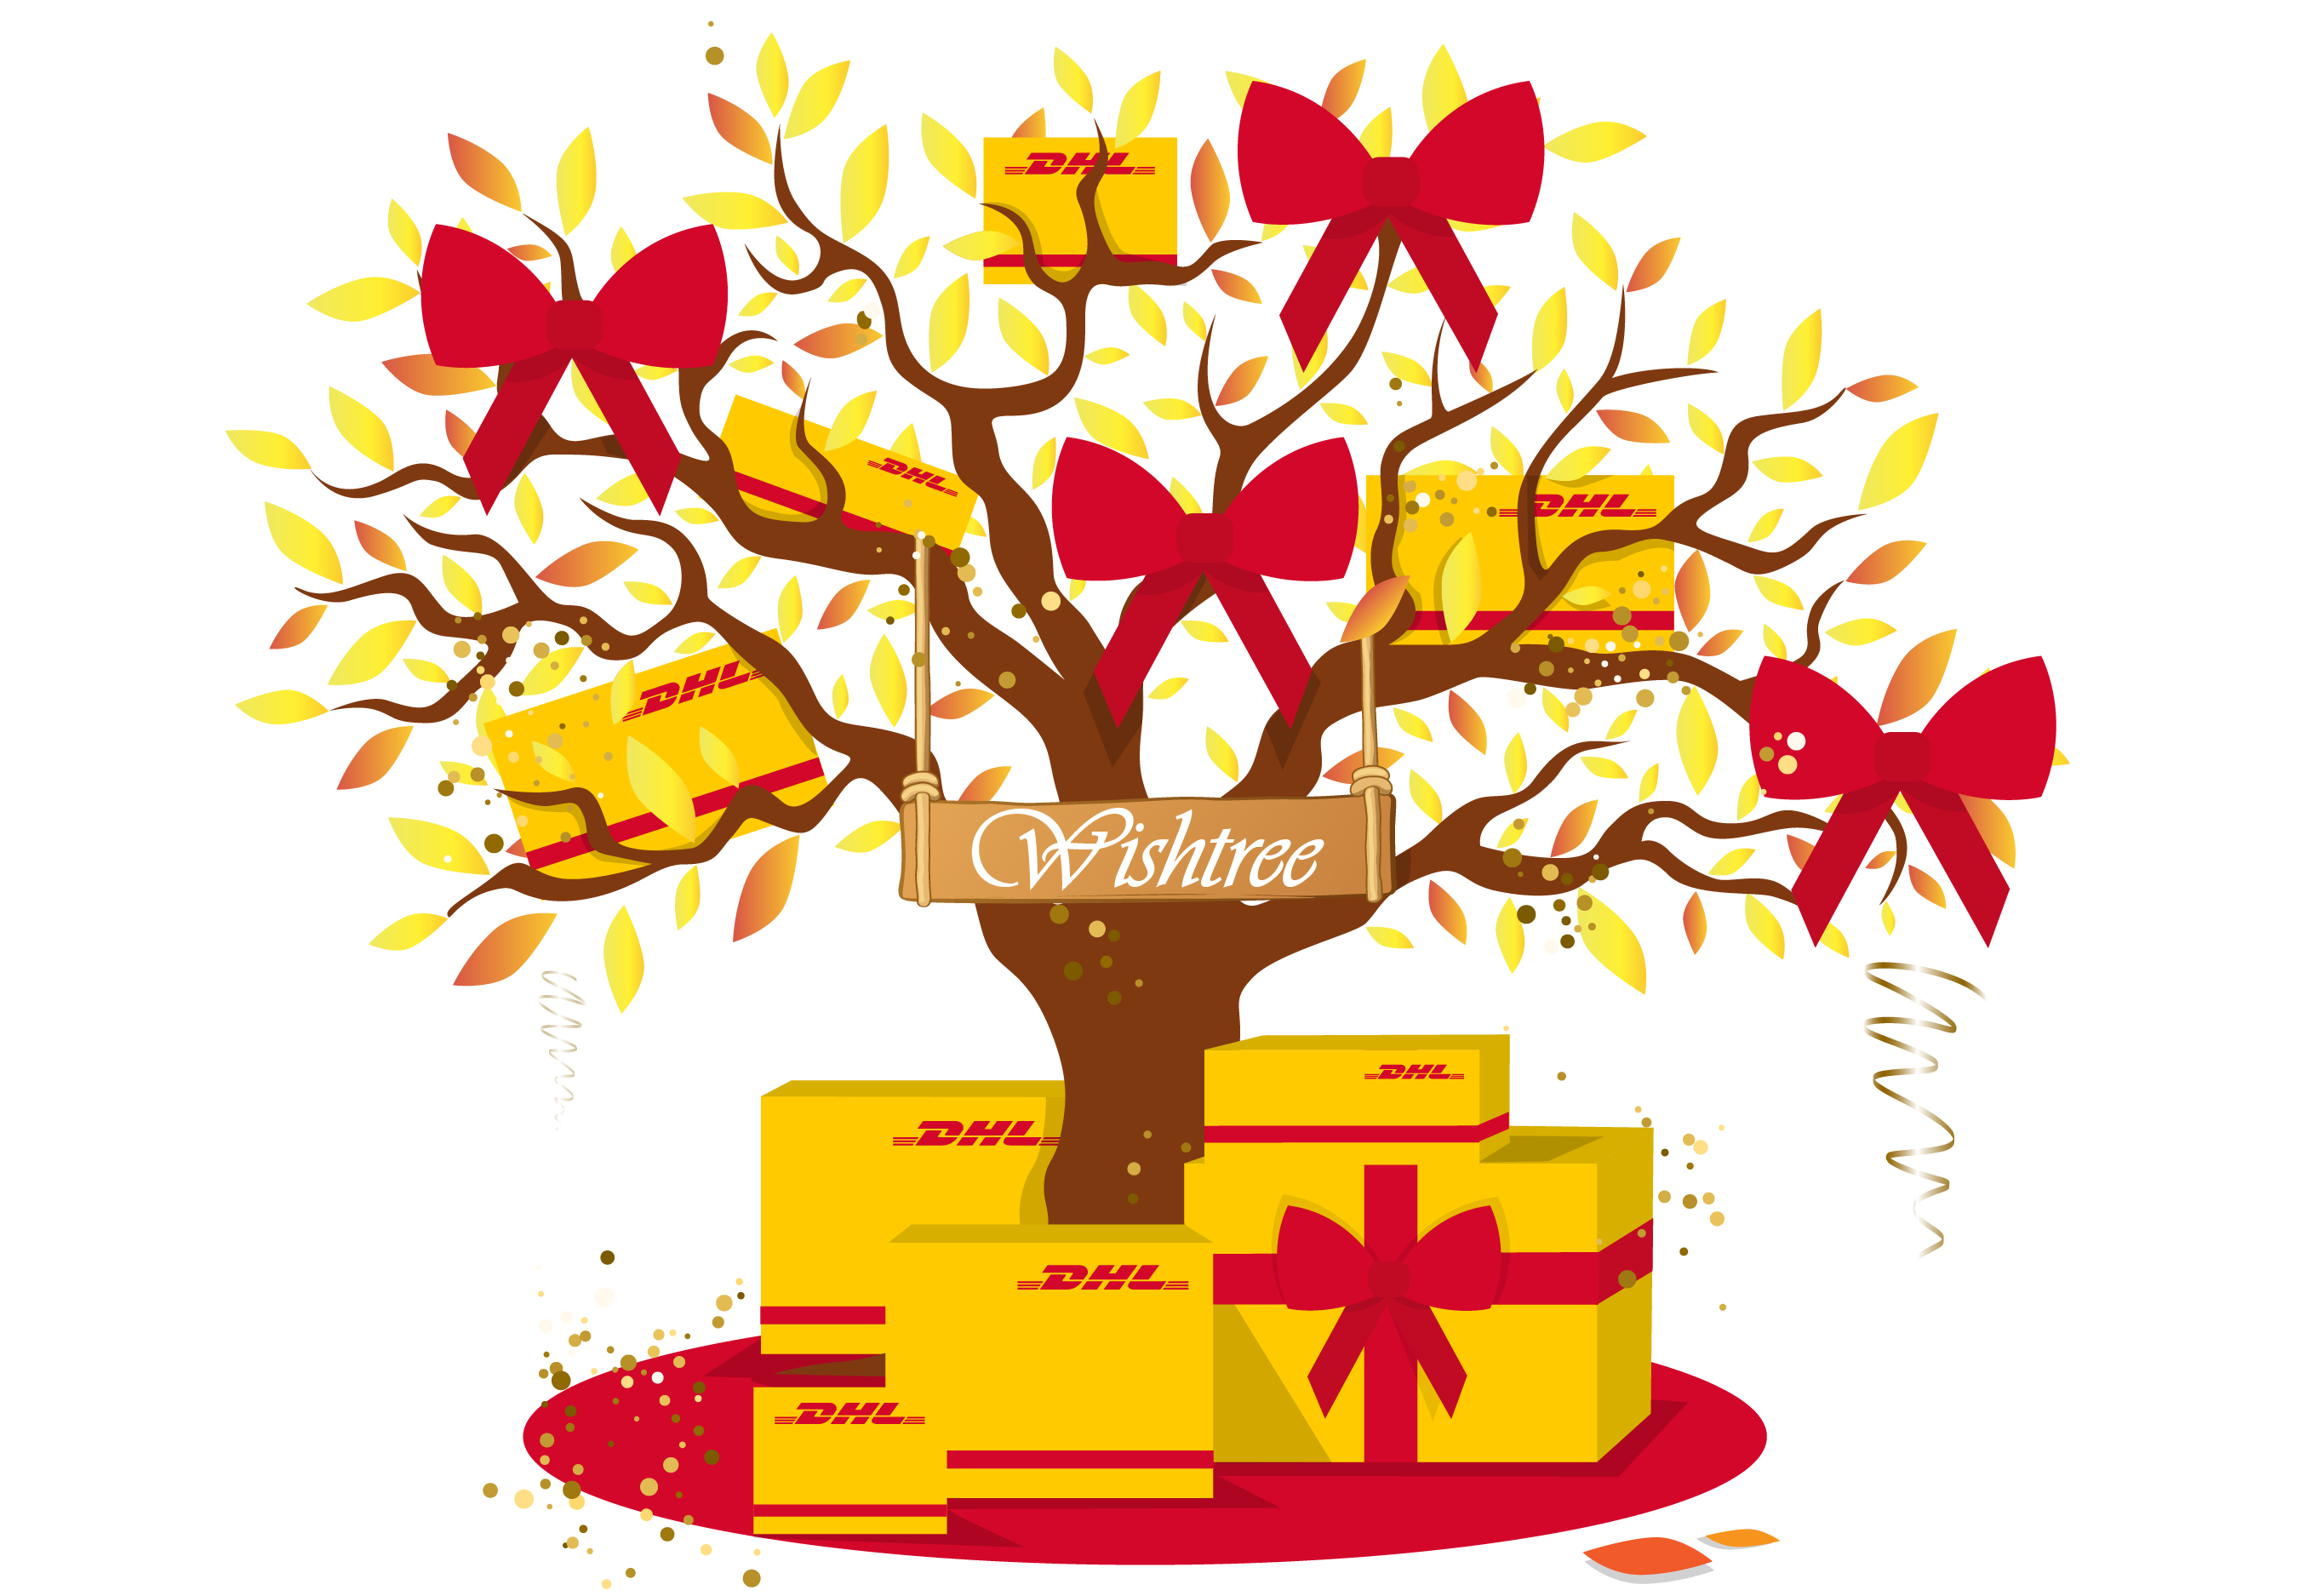 Wishtree dhl express tell. Surprise clipart surprise gift